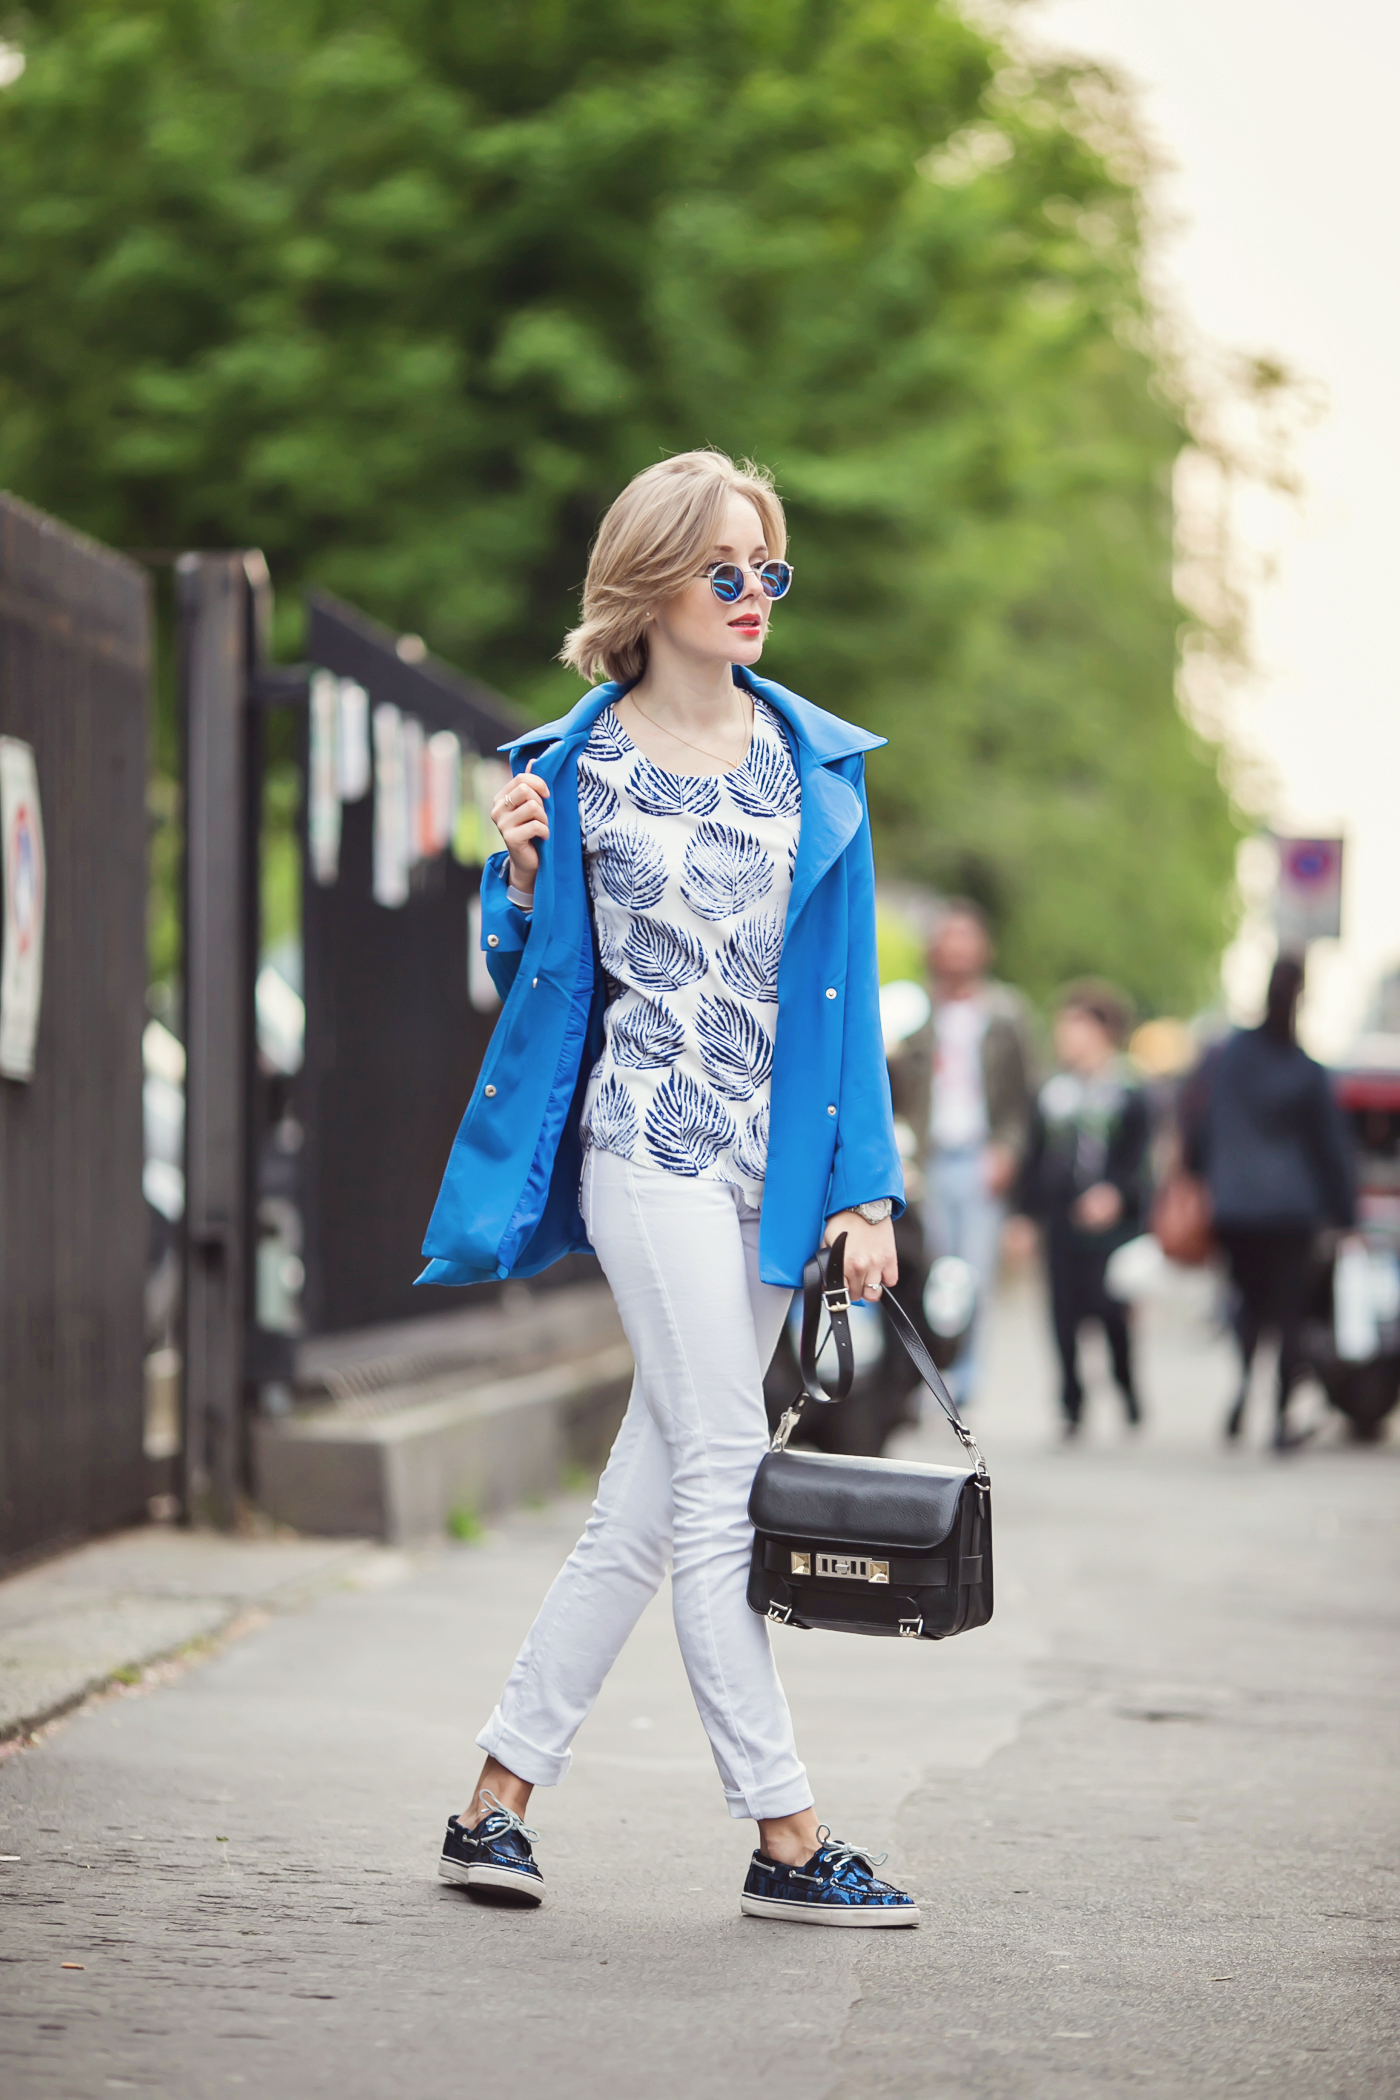 darya kamalova from thecablook com in milan for fuori salone 2014 salone del mobile wears proenza schouler ps11 bag with asos white jeans and sperry topsiders-32 copy